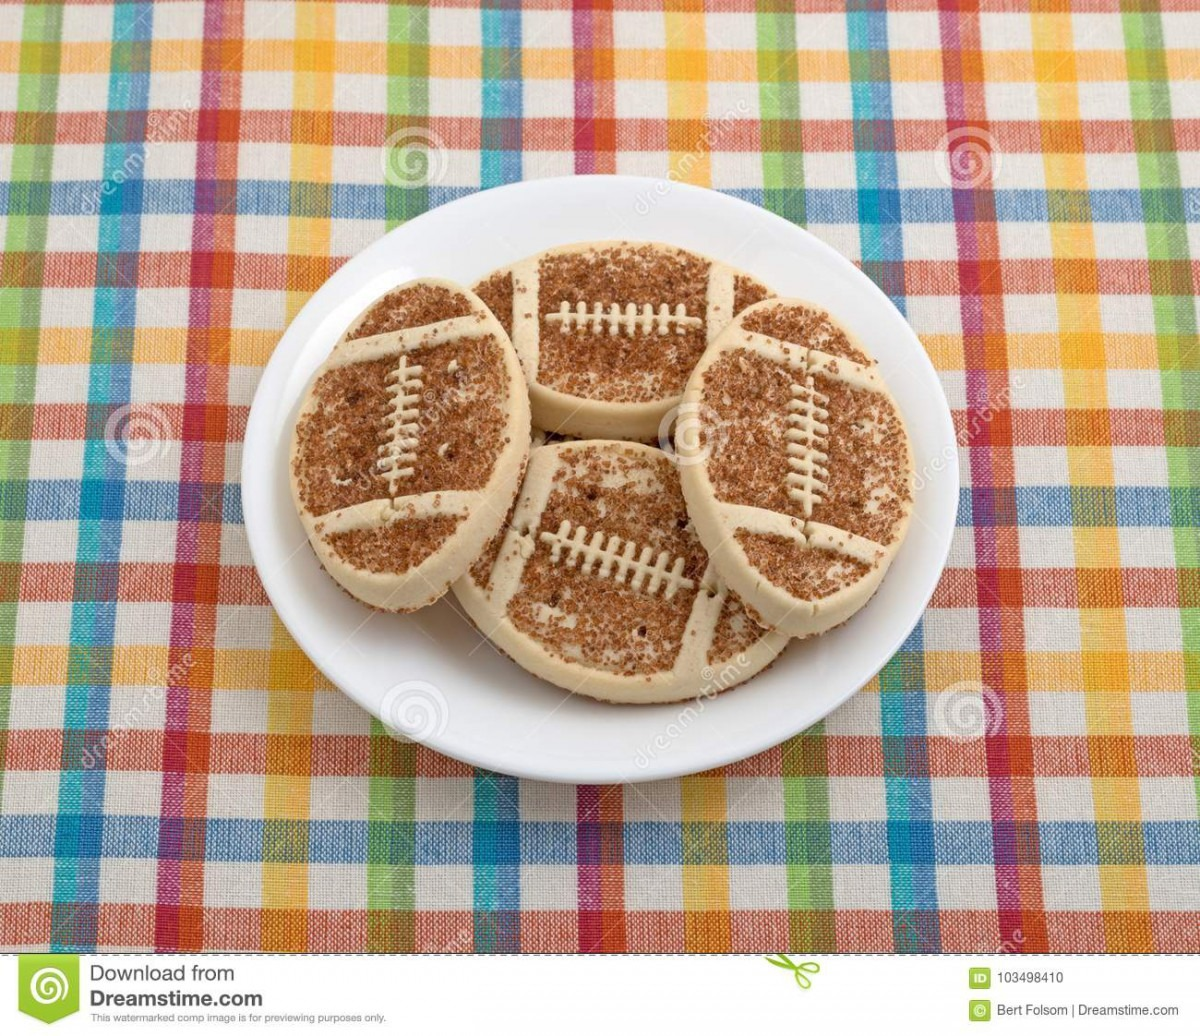 Football Shaped Sugar Cookies On A Plate Stock Photo